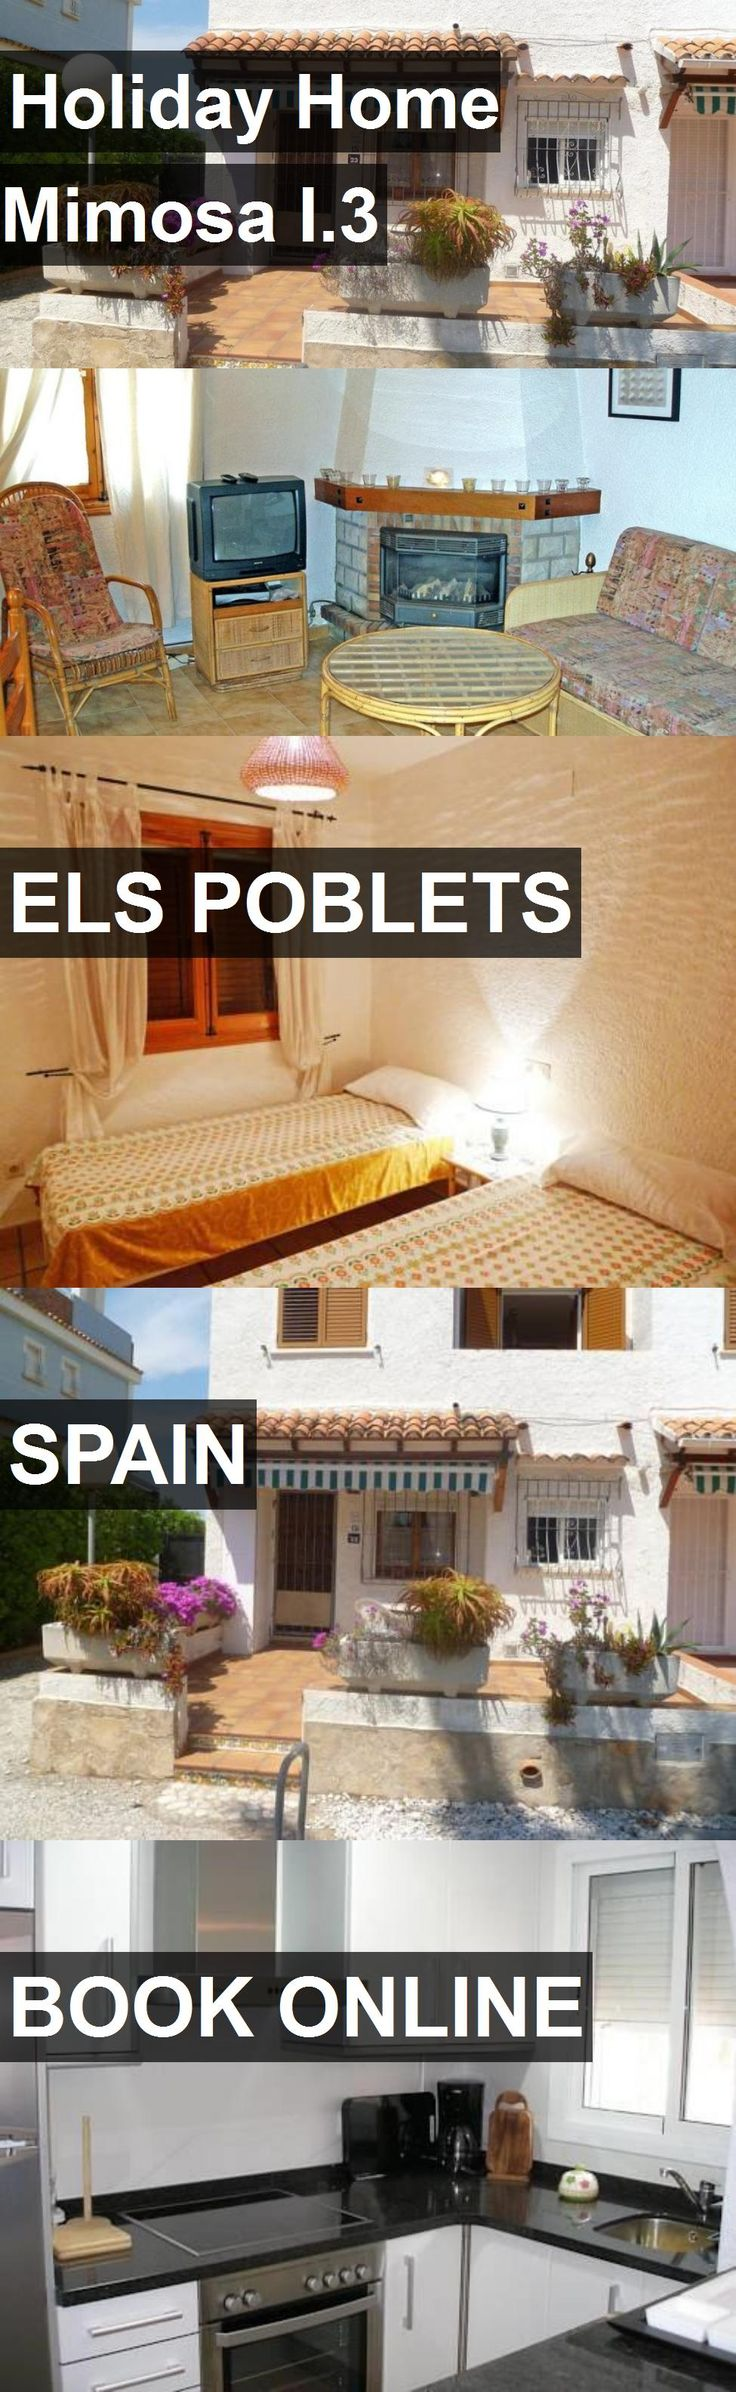 Hotel Holiday Home Mimosa I.3 in Els Poblets, Spain. For more information, photos, reviews and best prices please follow the link. #Spain #ElsPoblets #HolidayHomeMimosaI.3 #hotel #travel #vacation